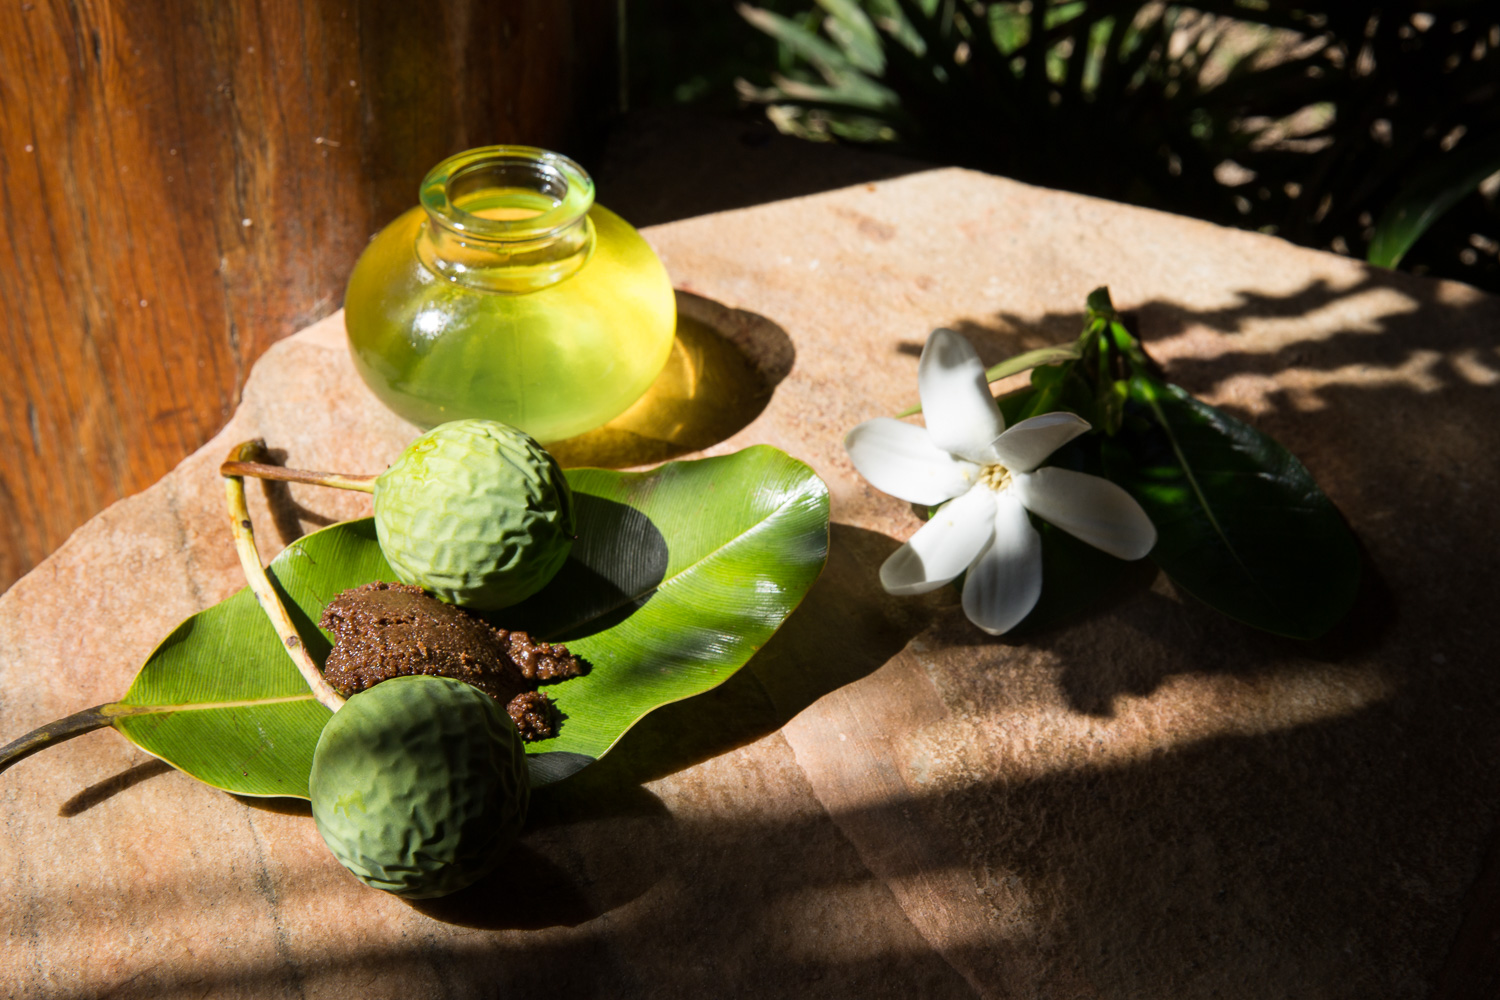 A few of the natural ingredients used in massage and beauty treatments - monoi oil, tamanu, tiare, Tahitian vanilla.